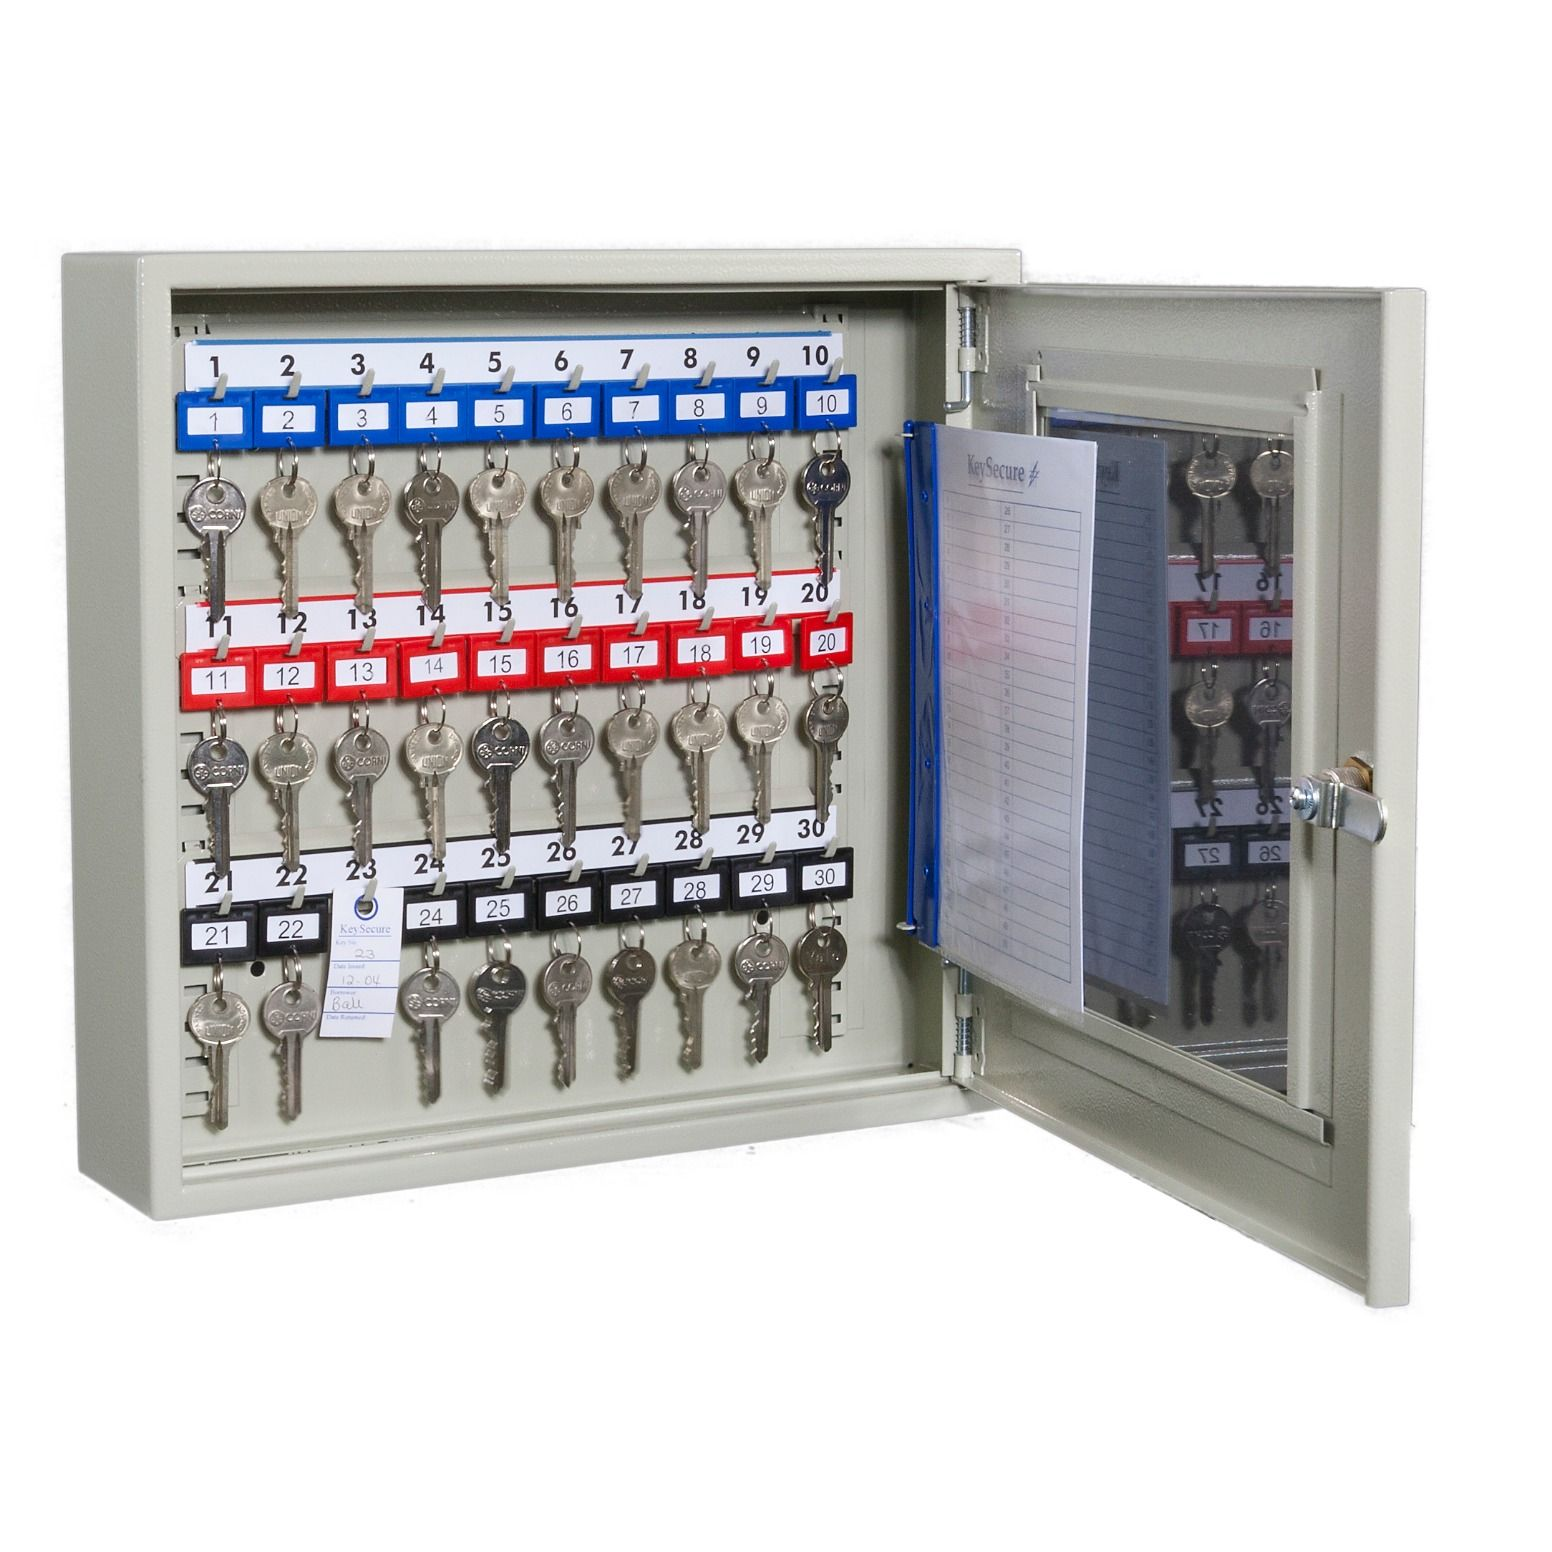 clear_fronted_perspex_key_cabinets_30_hook_35_x_38_x_8cm_open.jpg